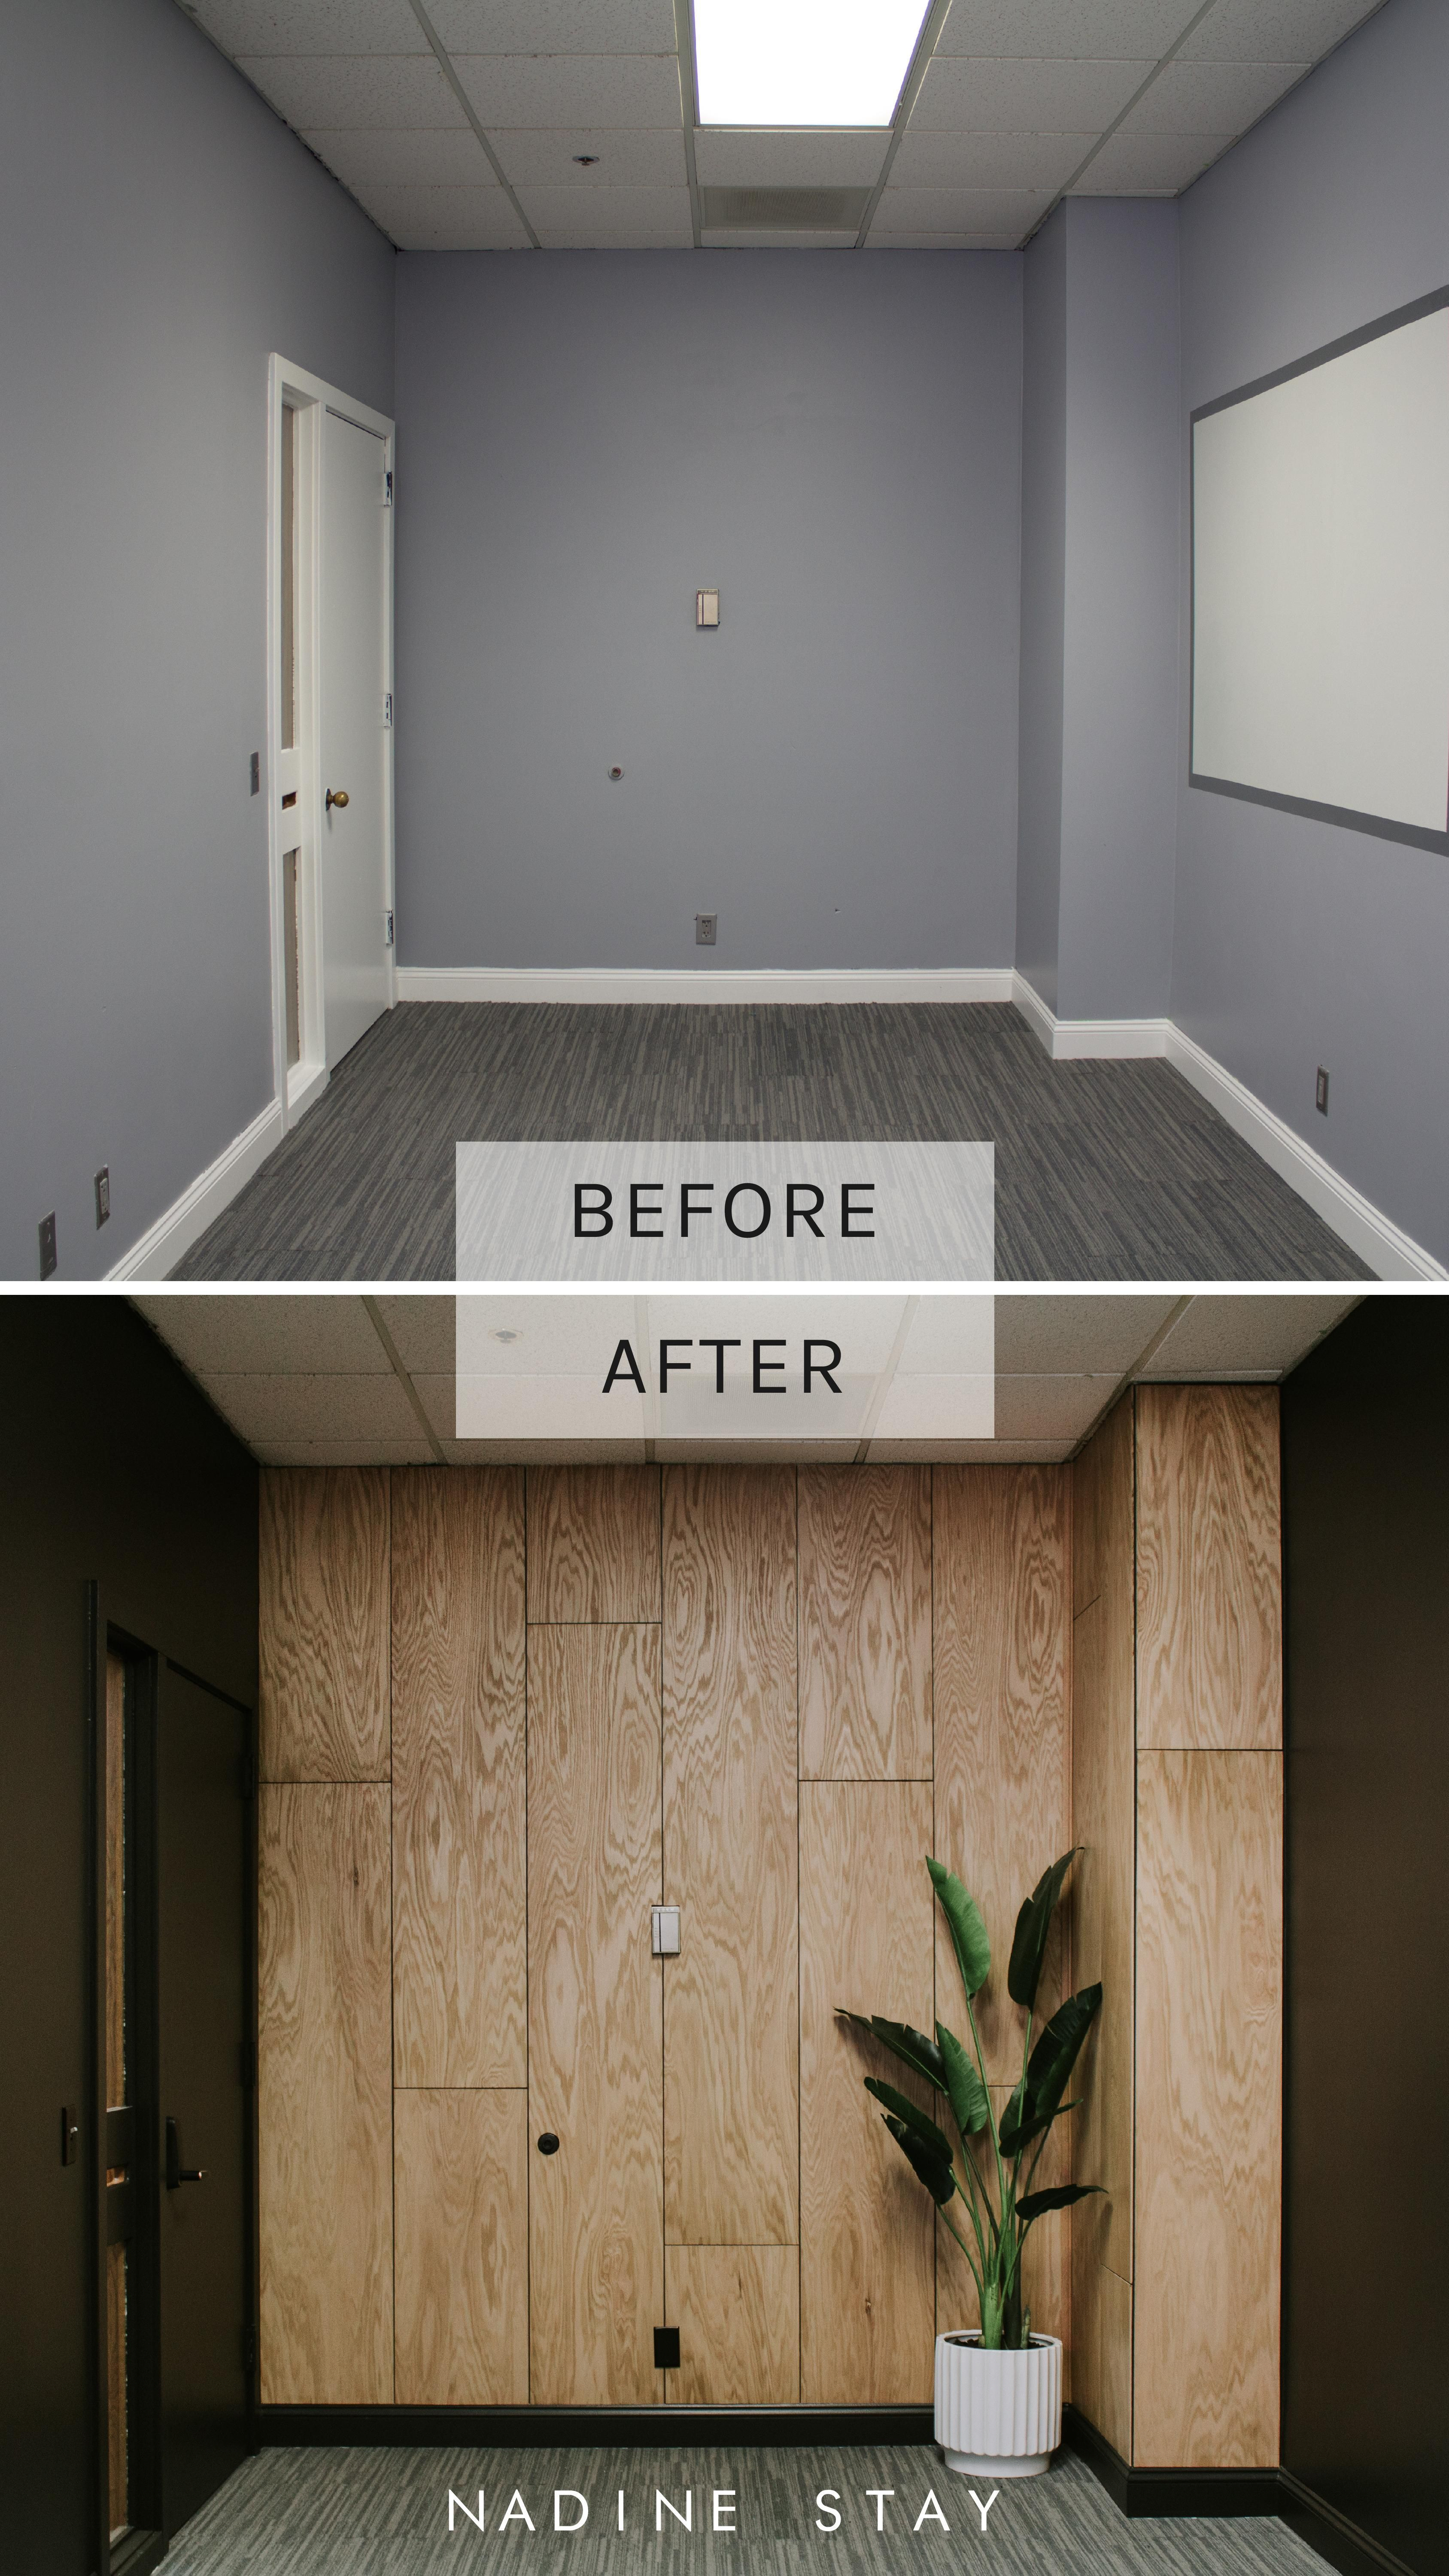 Diy Plywood Accent Wall Nadine Stay Feature Wall Bedroom Wood Feature Wall Wall Paneling Diy